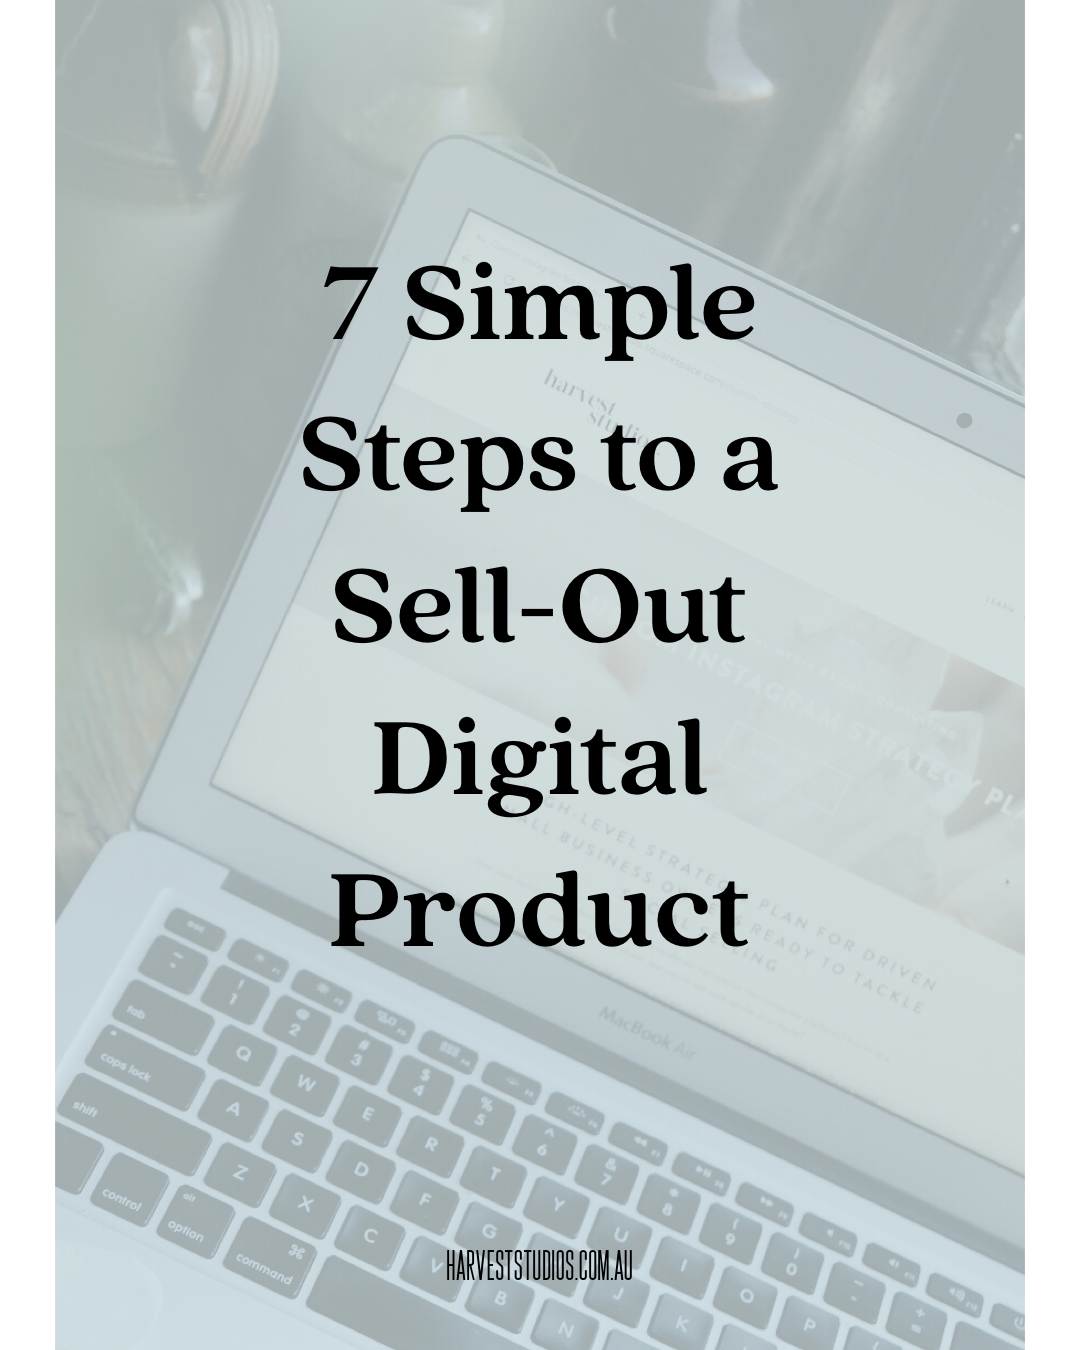 digital-product-sales-tips.PNG